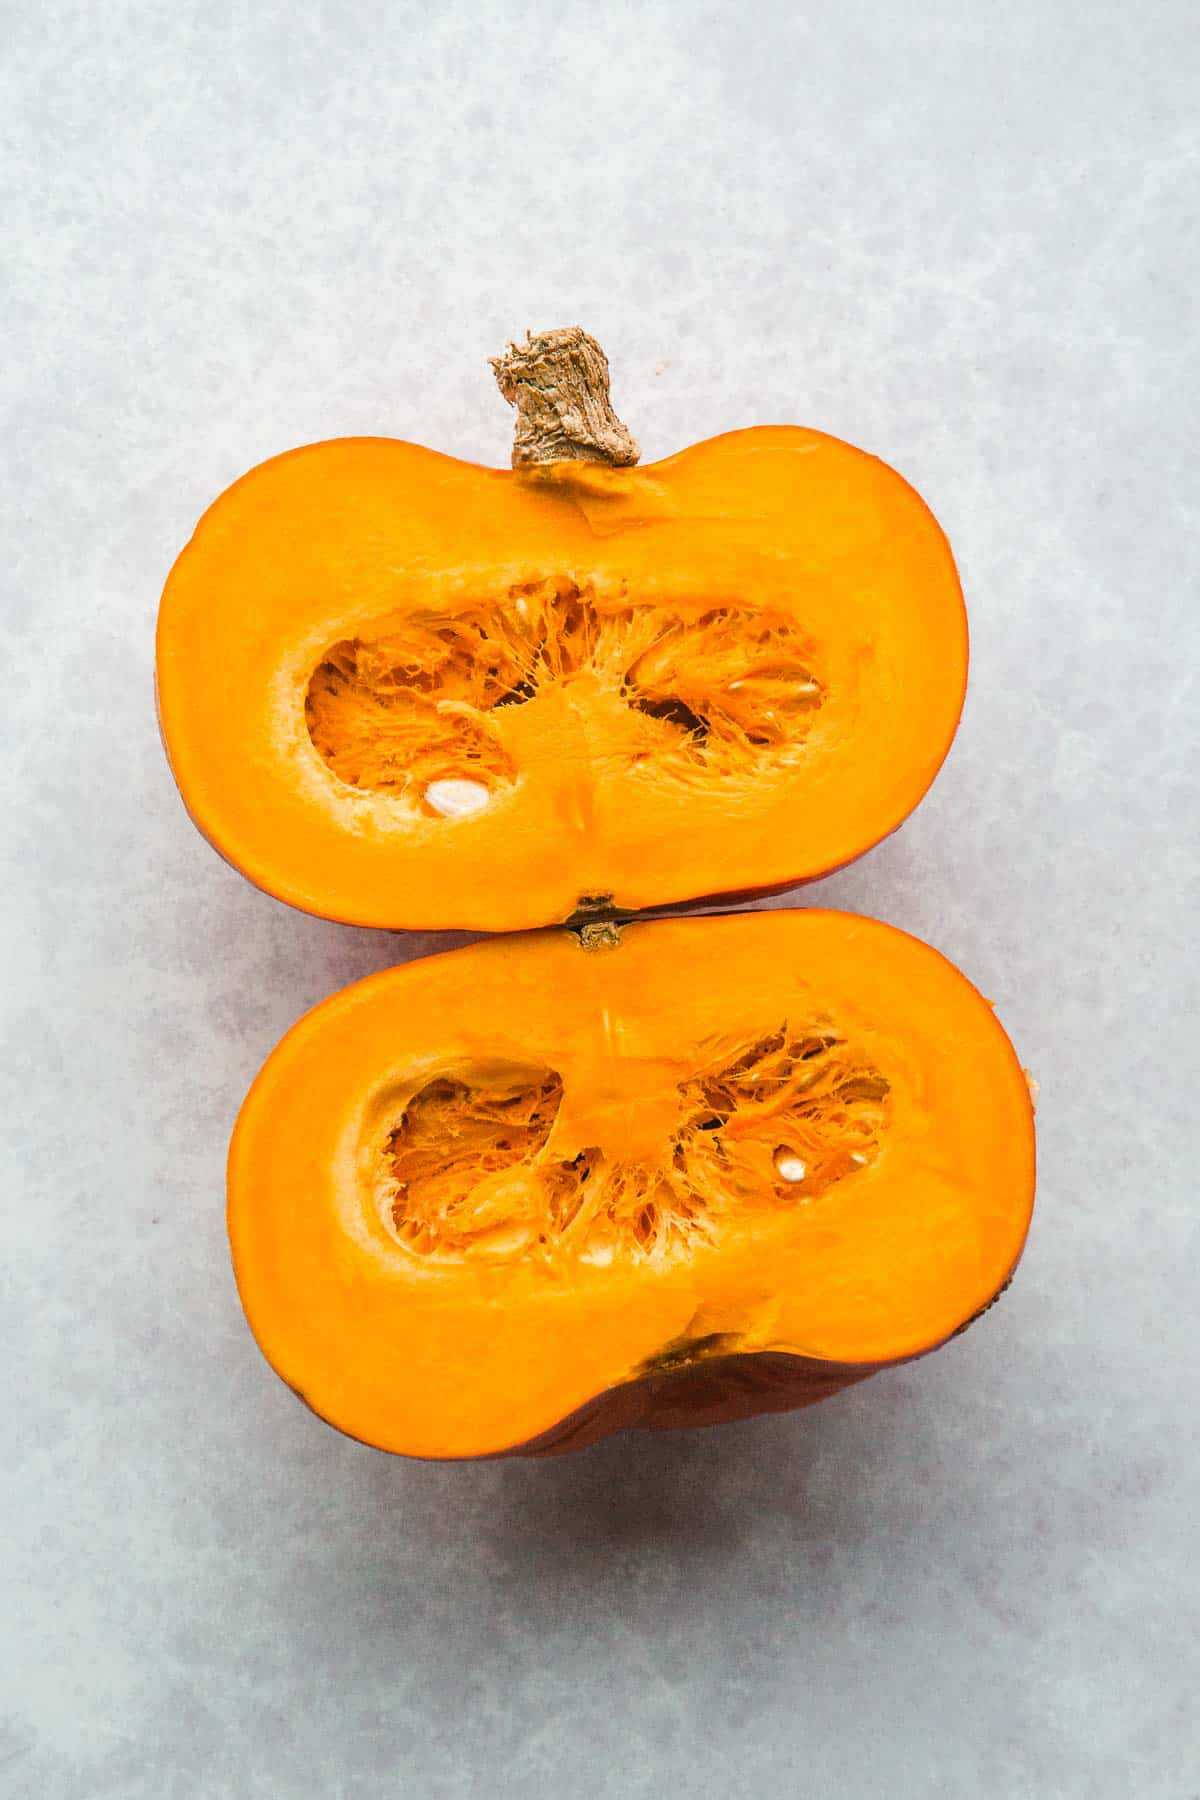 A pumpkin cut into two halves